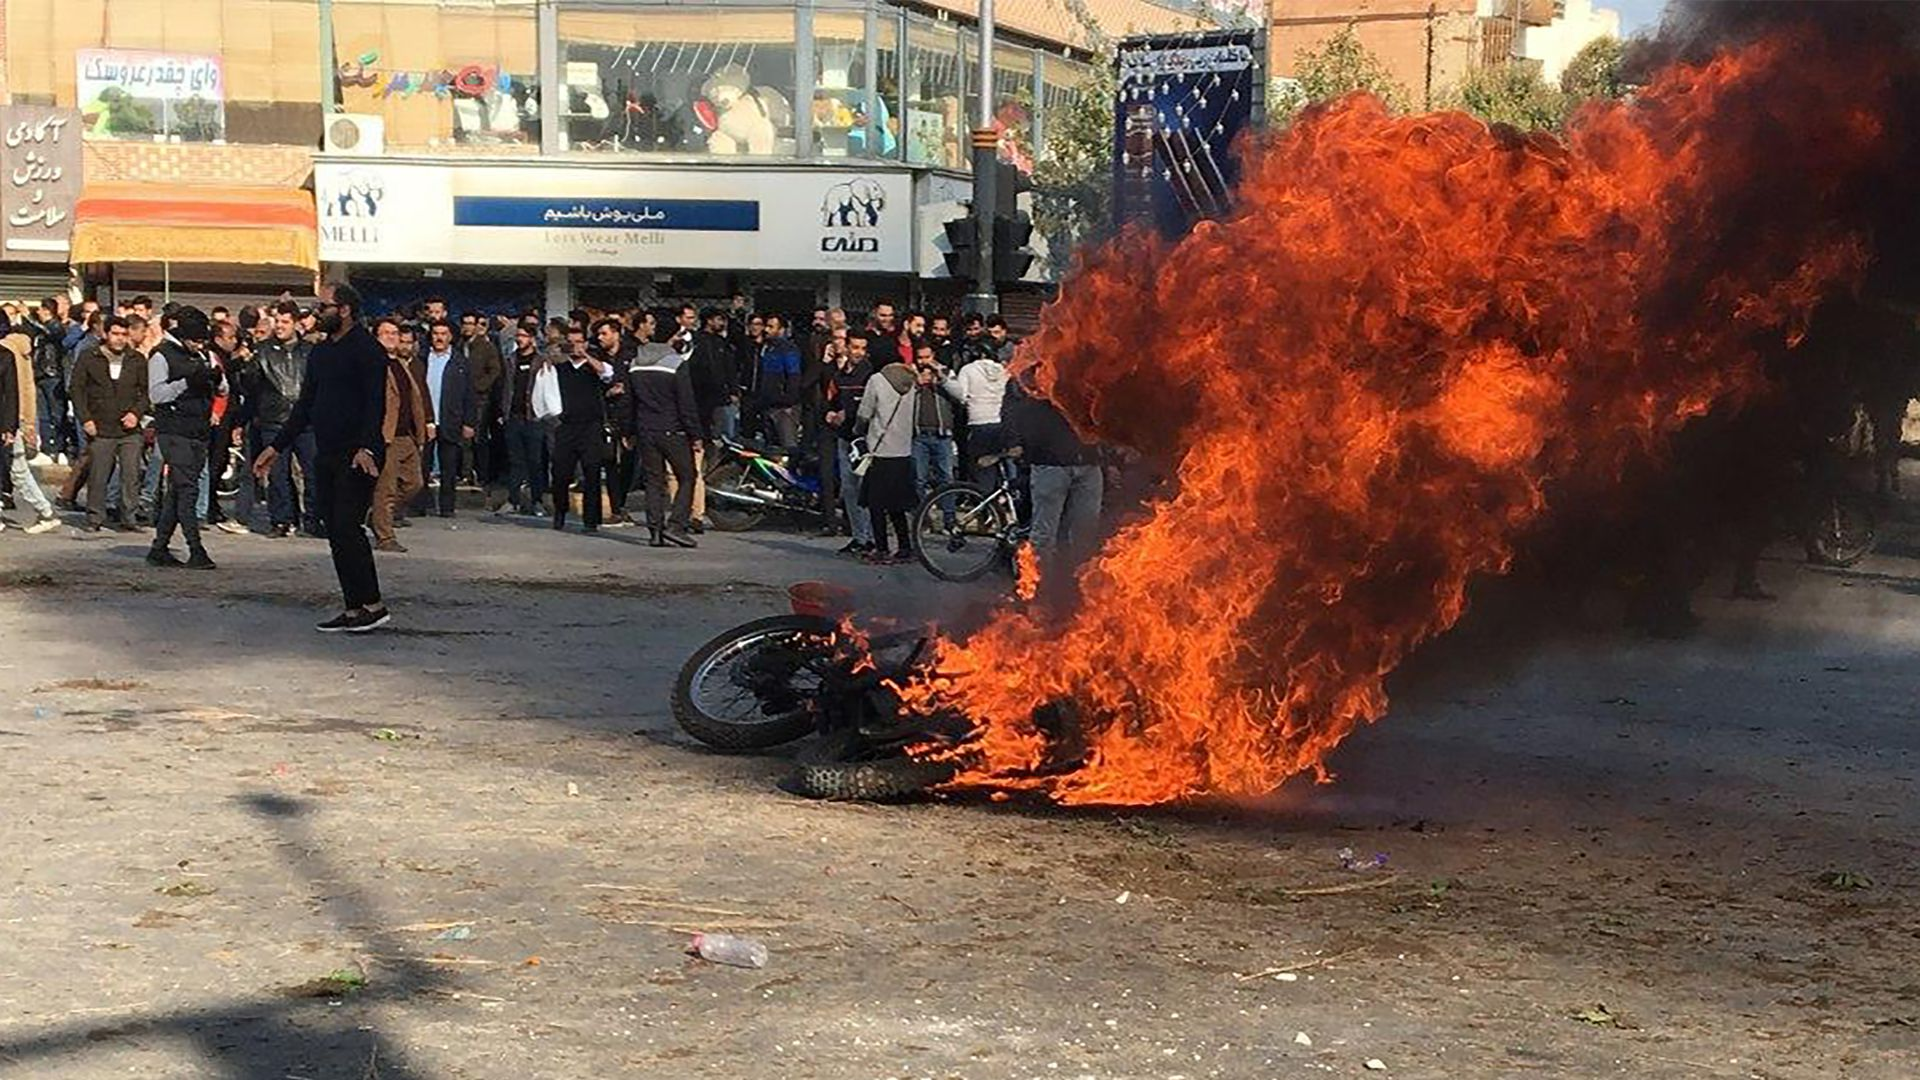 protestors surround a burning motorcycle in a street intersection